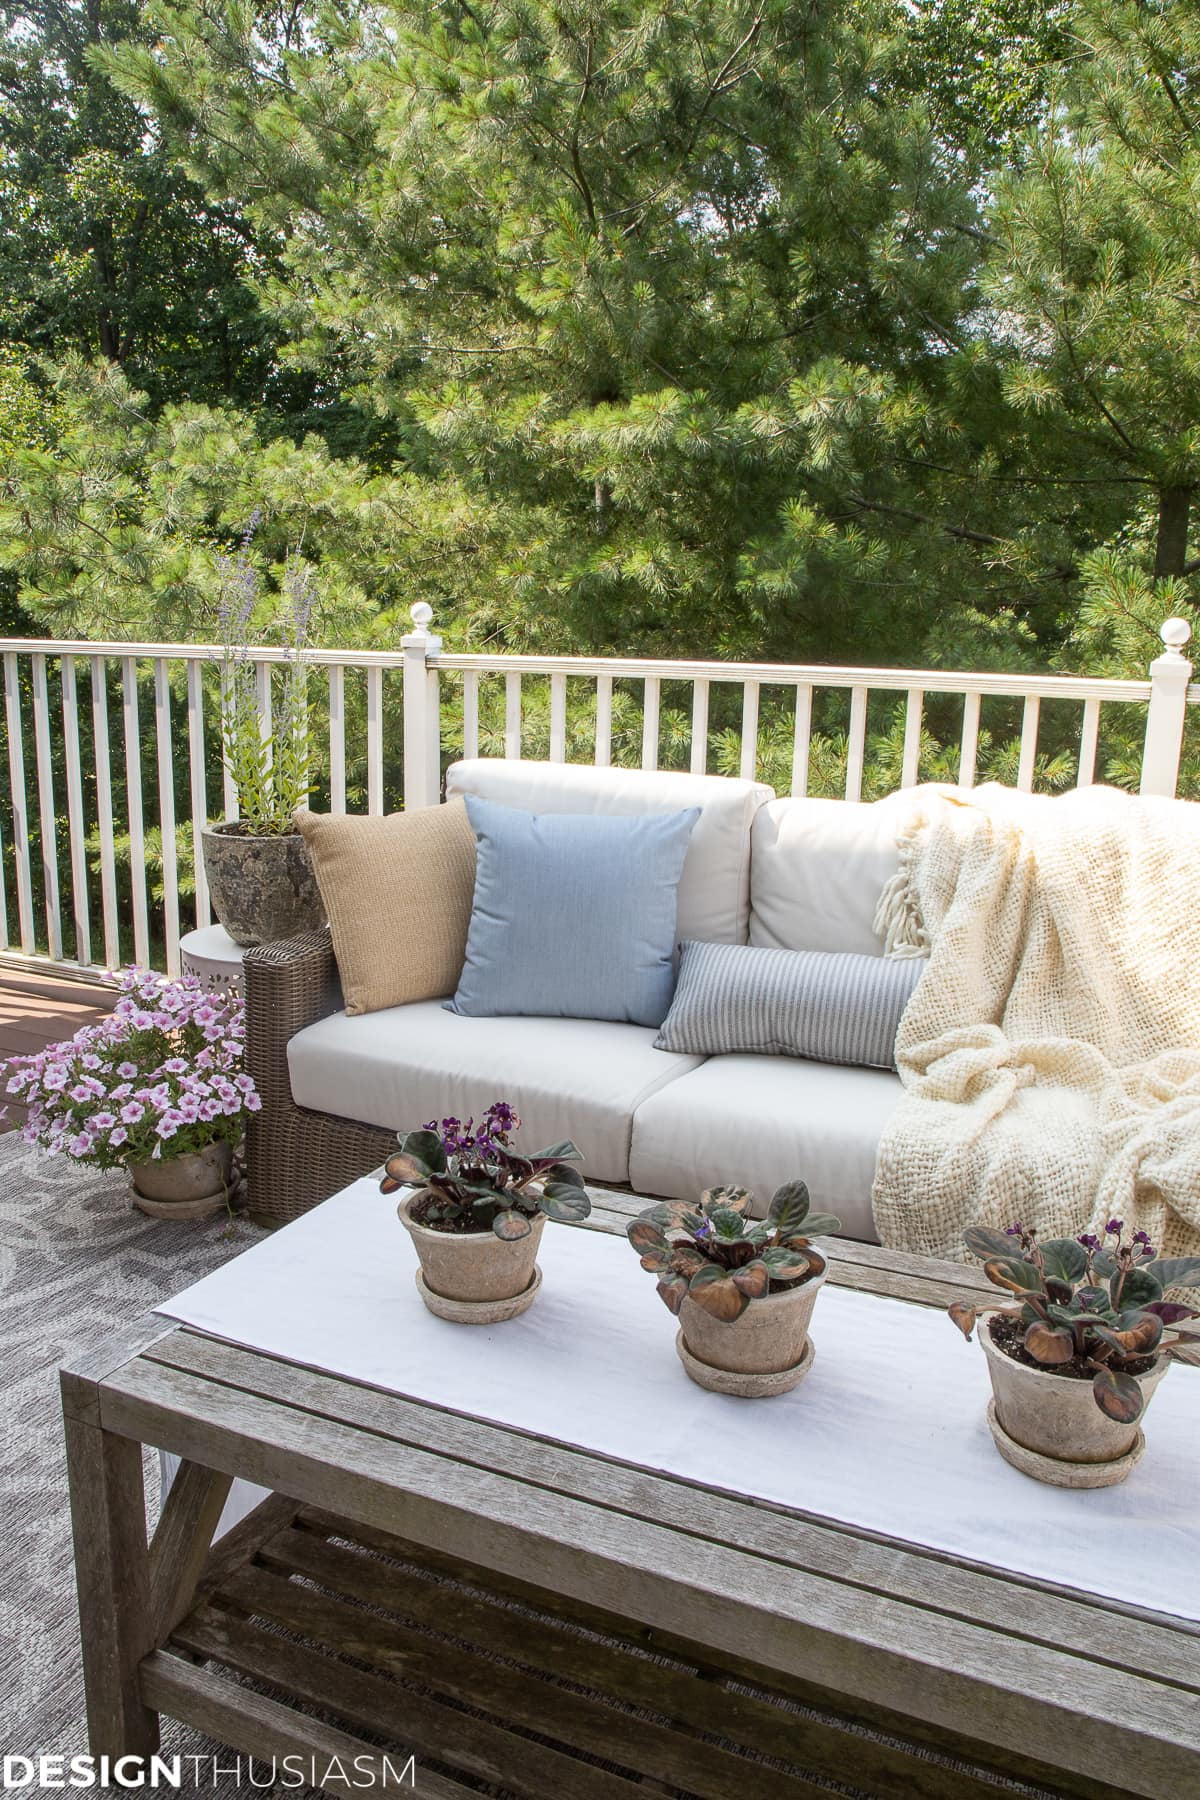 outdoor decor pillows and clay pots